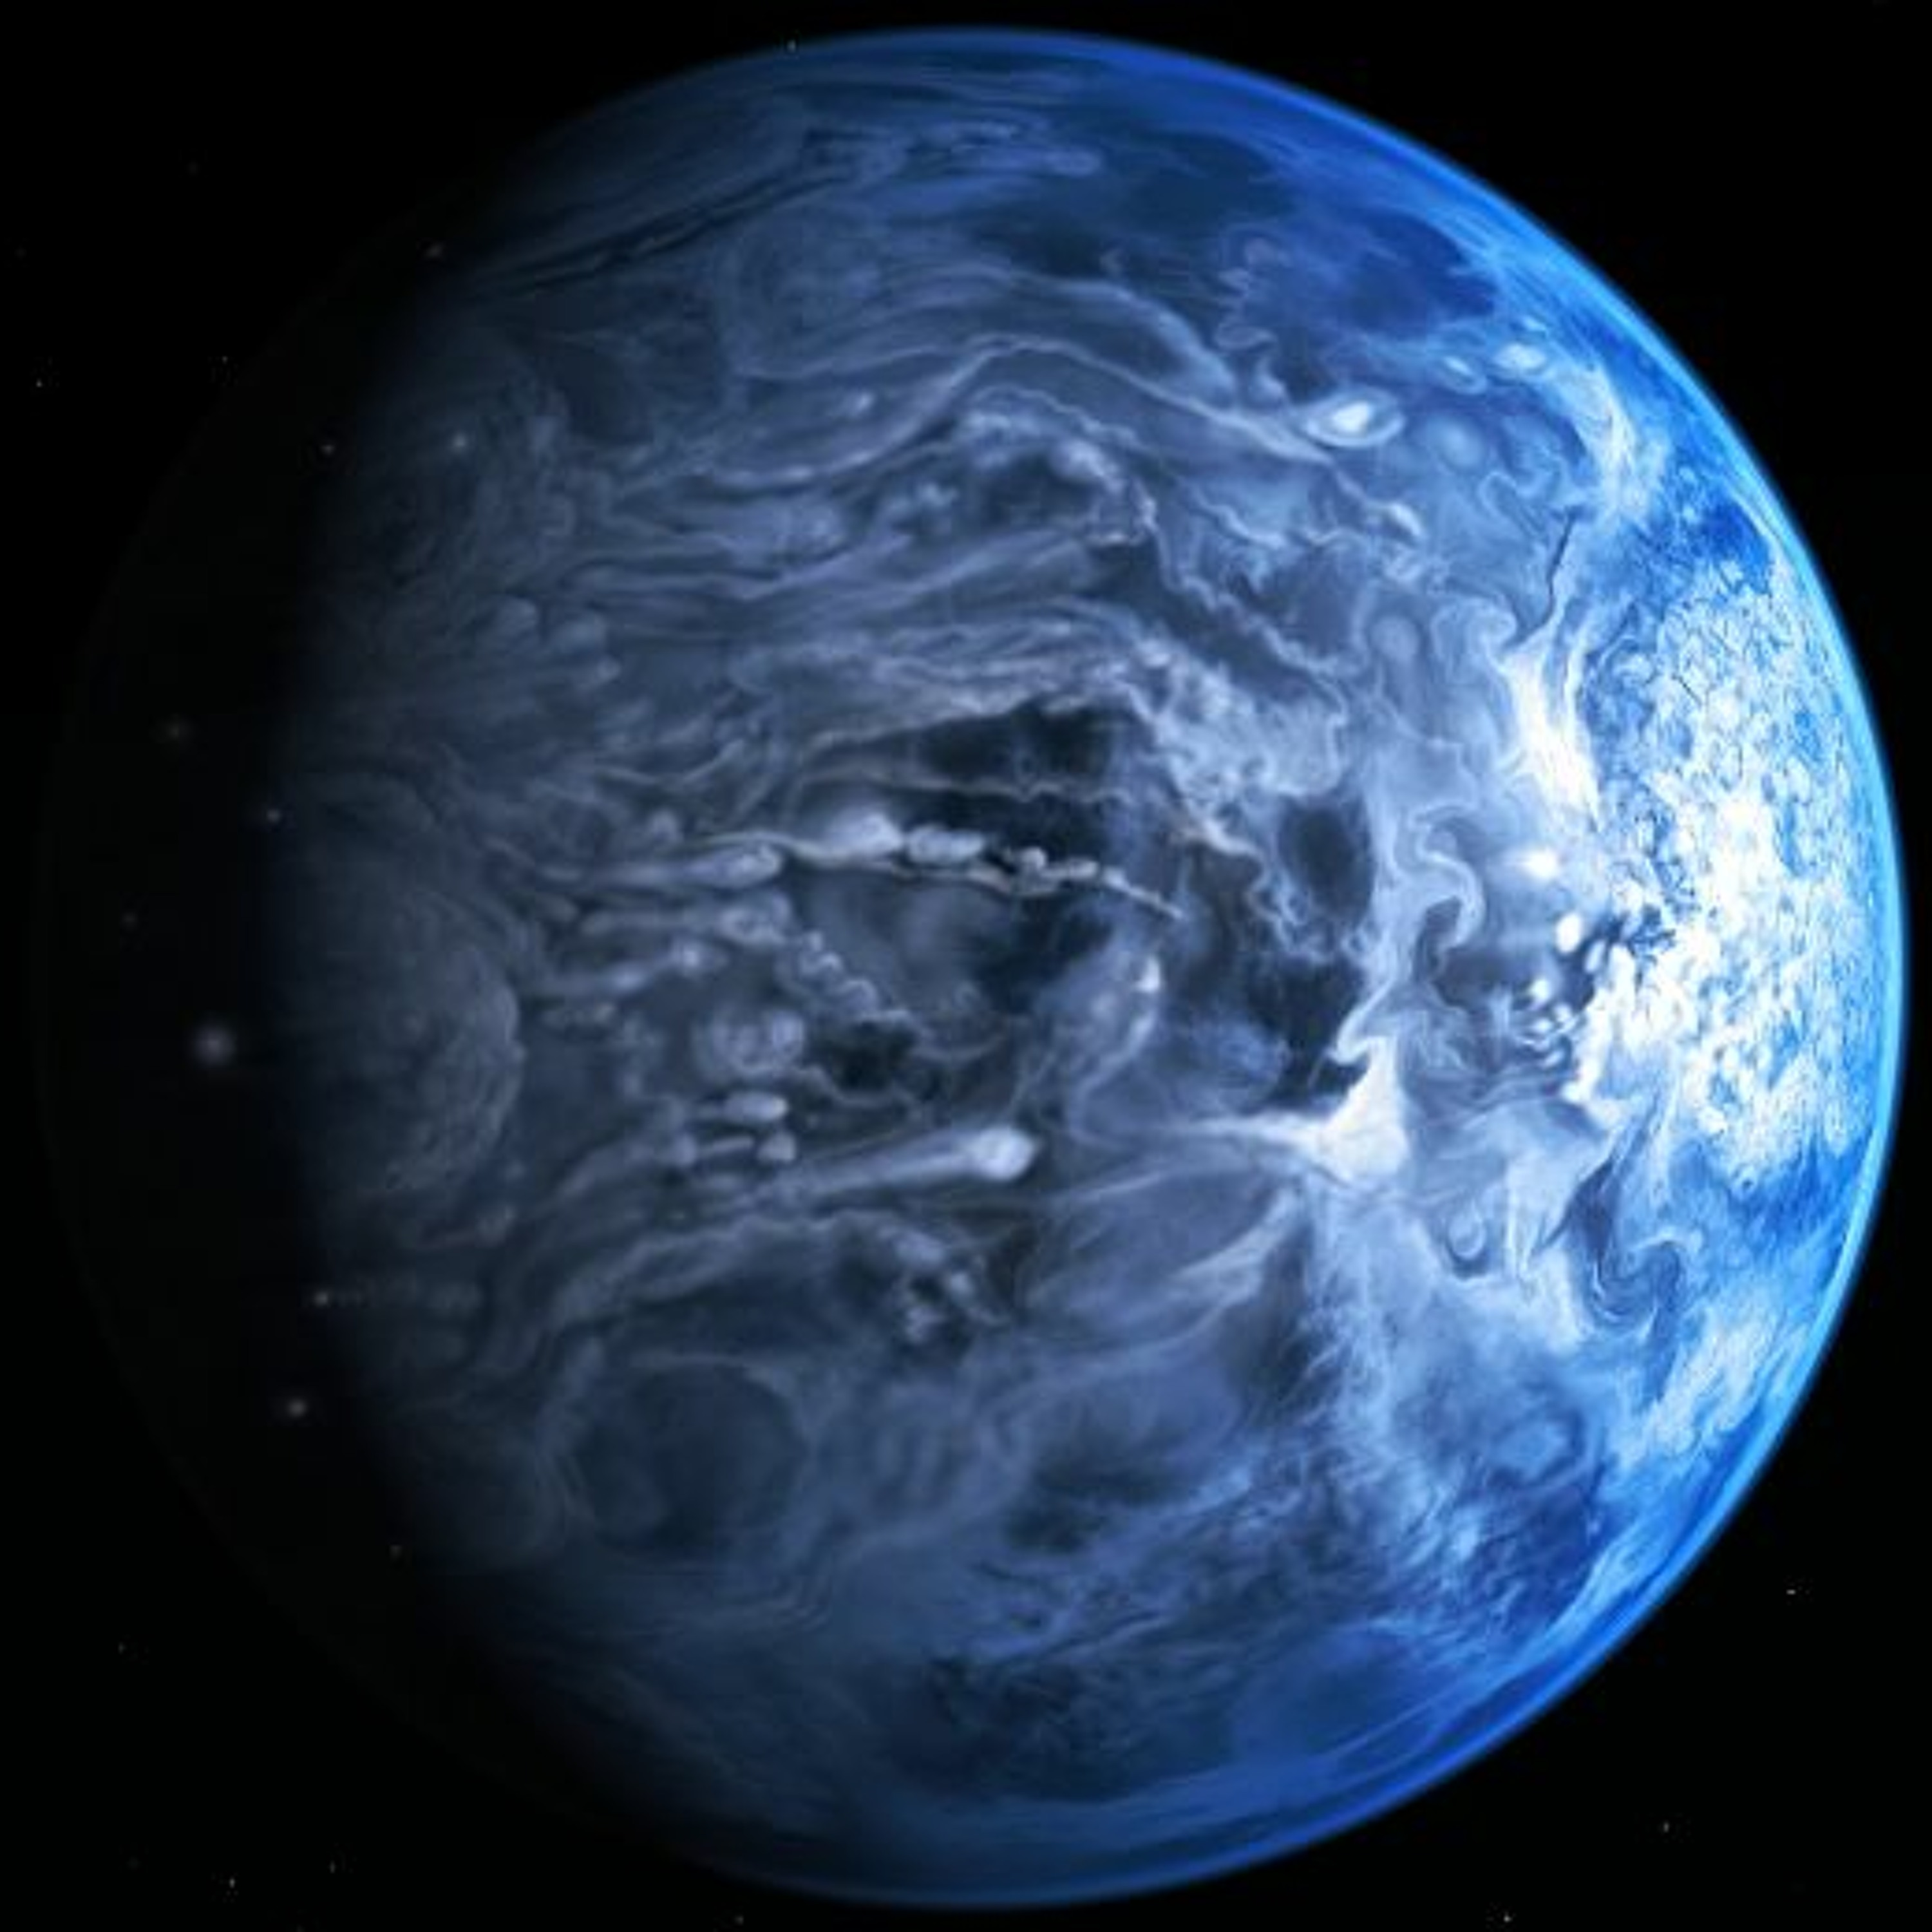 The hunt for Exoplanets - Will we find a planet we can live on?